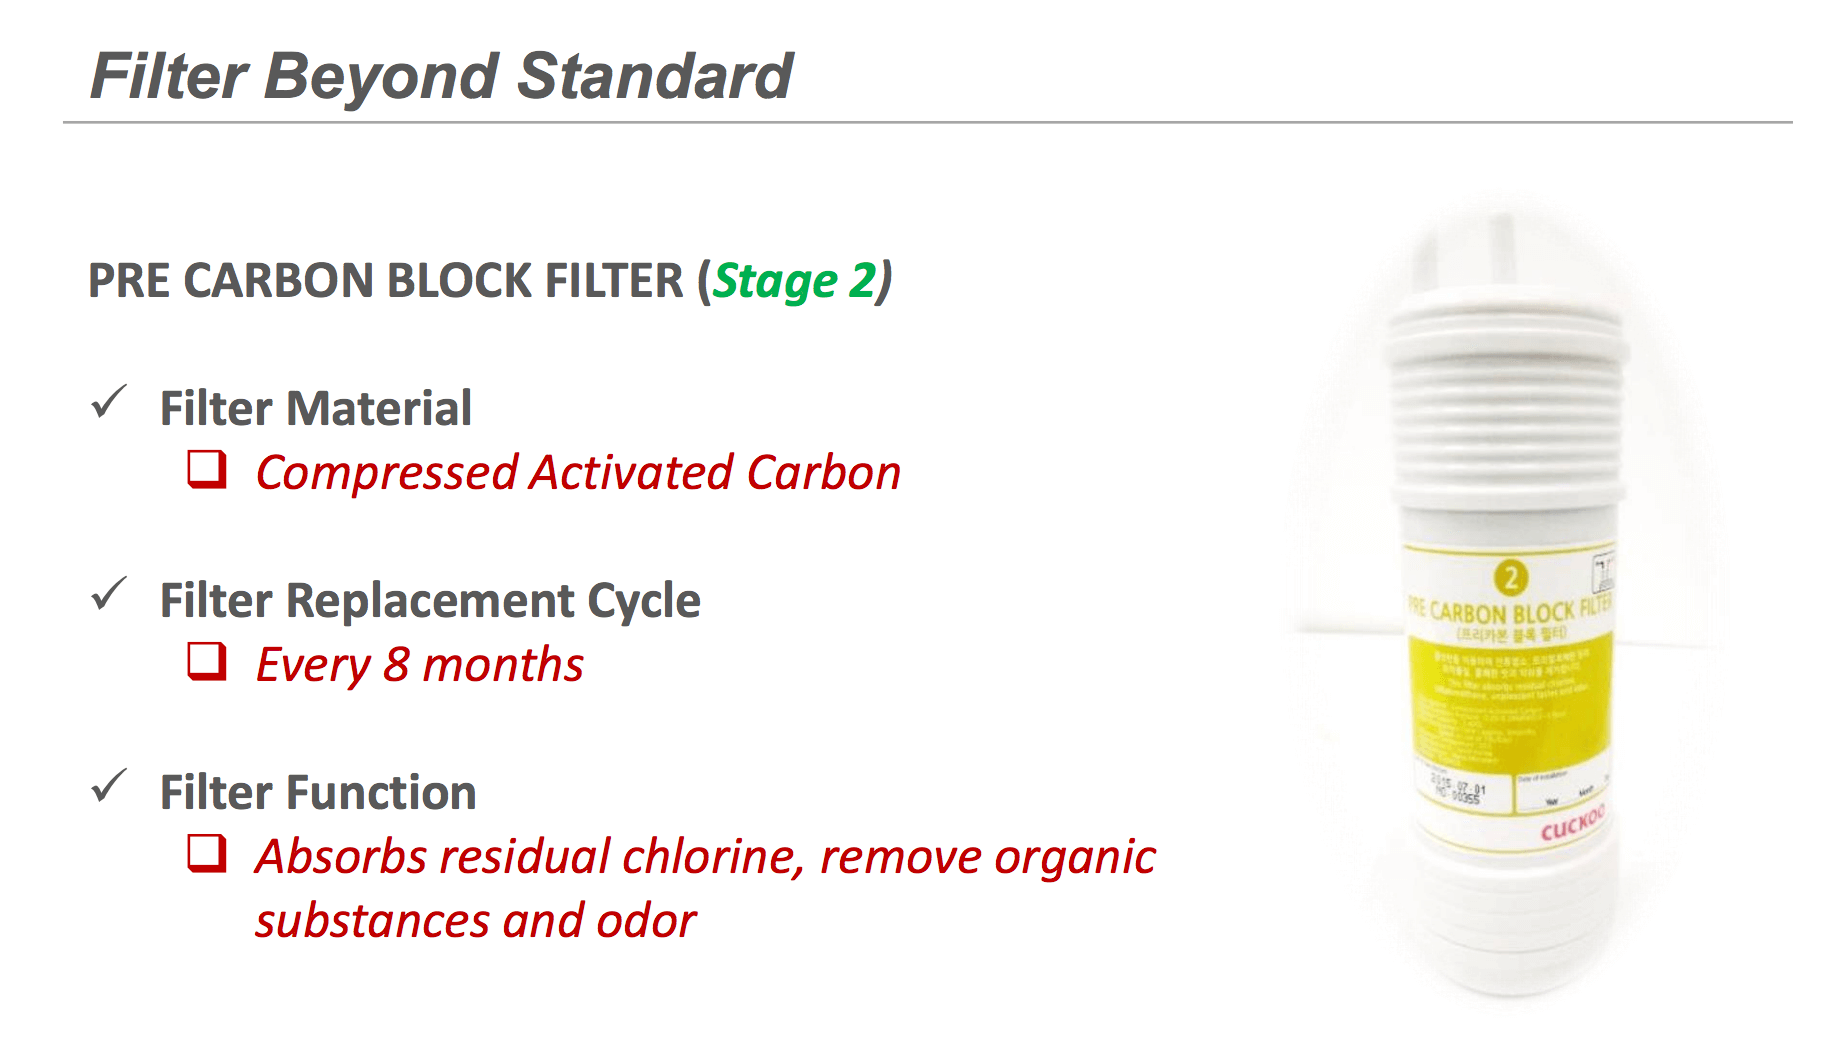 Cuckoo Pre Carbon Filter - Filters Residual Chlorine